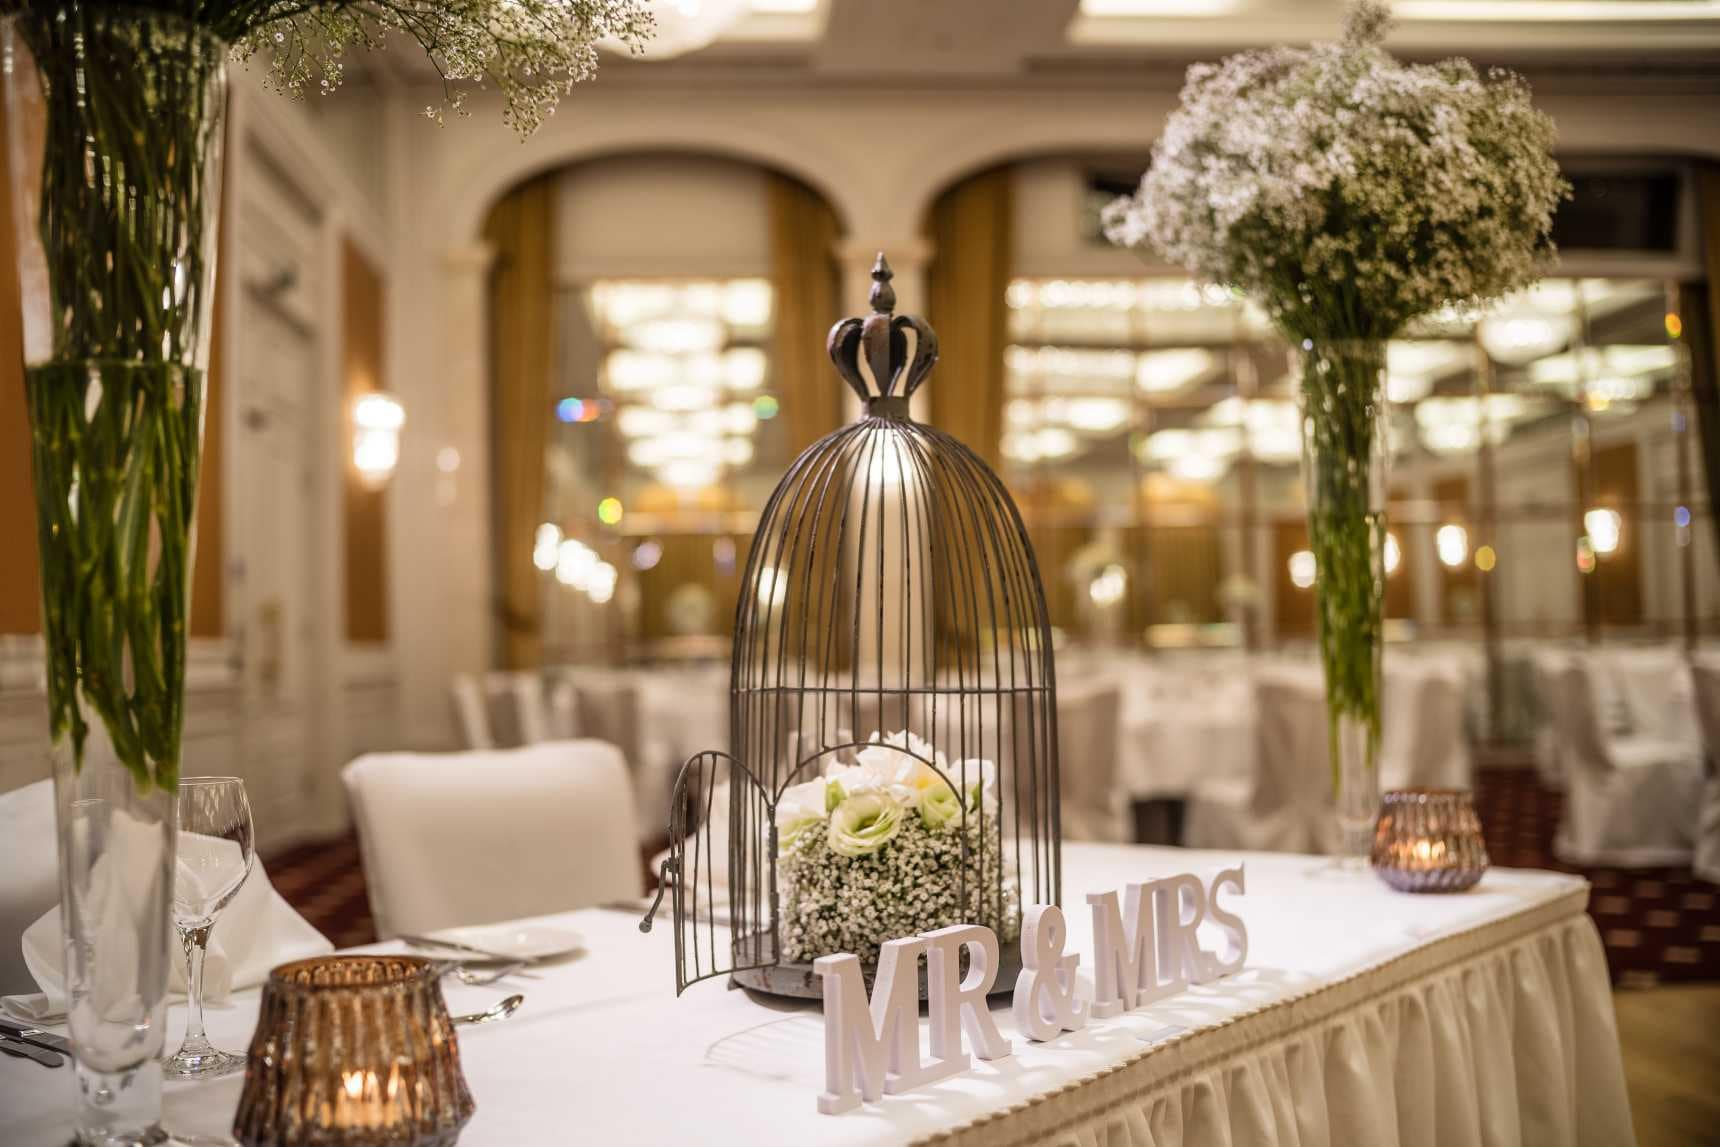 Reception table with a birdcage, flowers and wooden letters